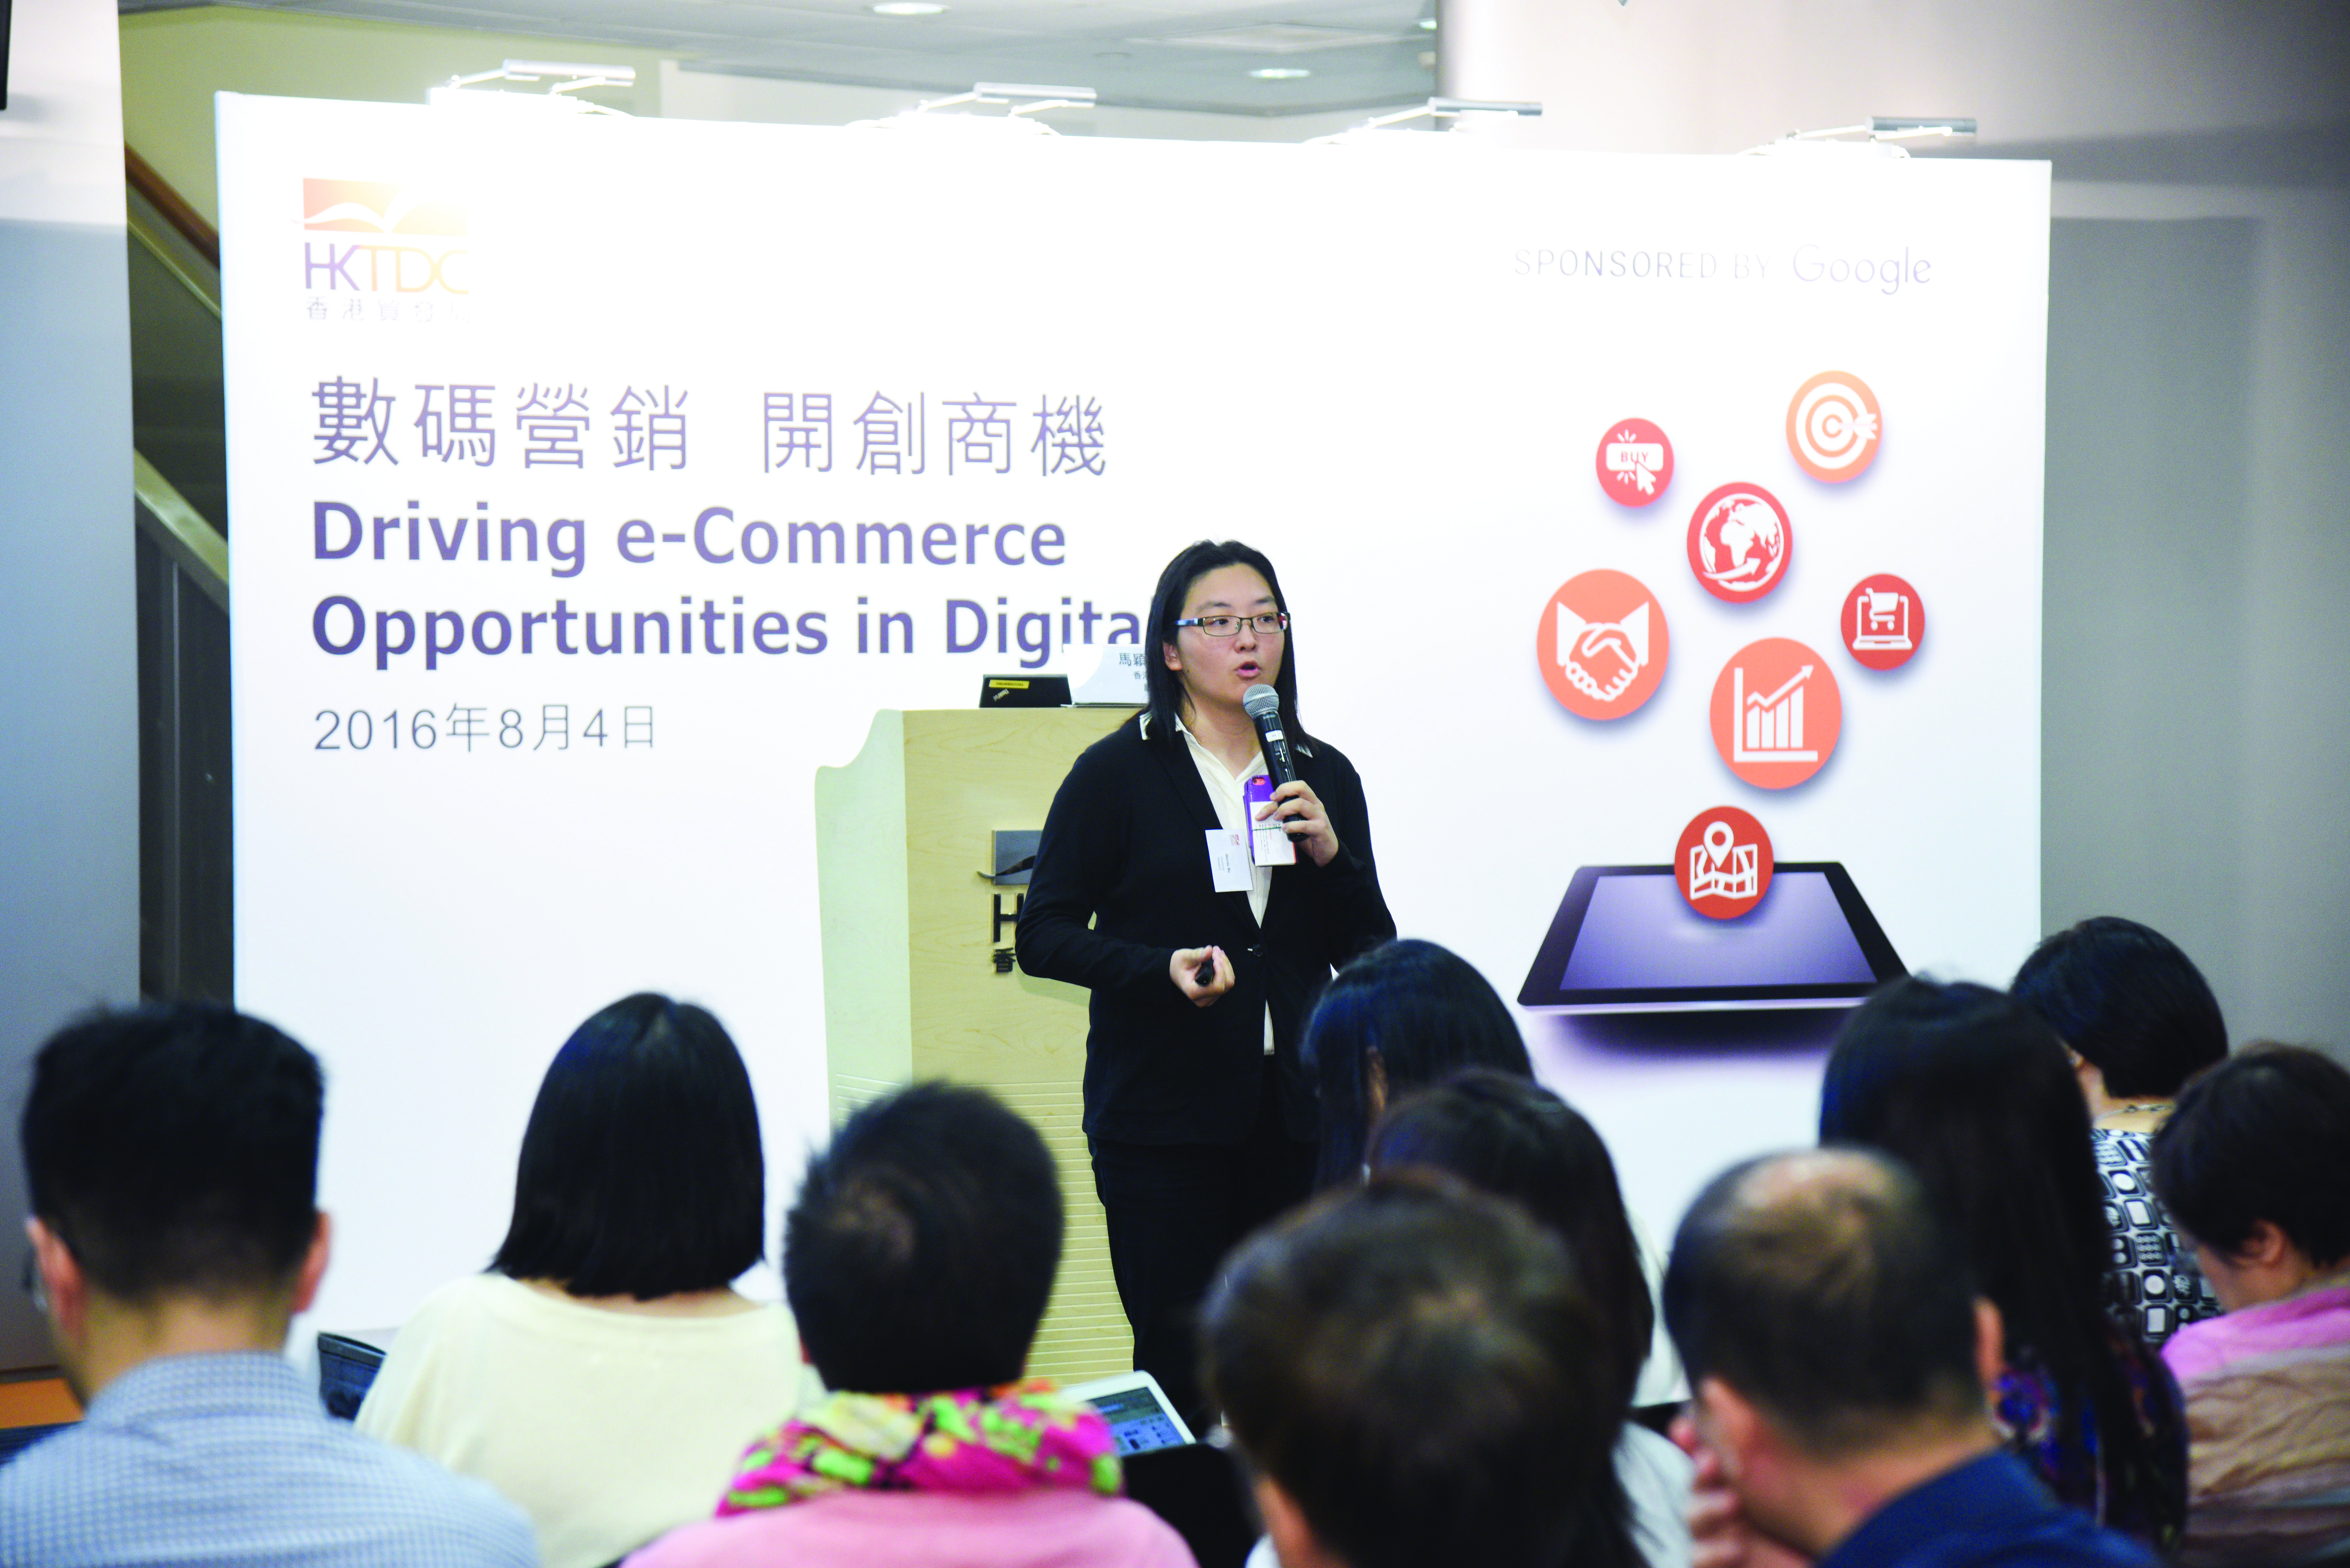 HKTDC Research Economist Wenda Ma urges businesses to adapt to changes brought by the rise of e-commerce